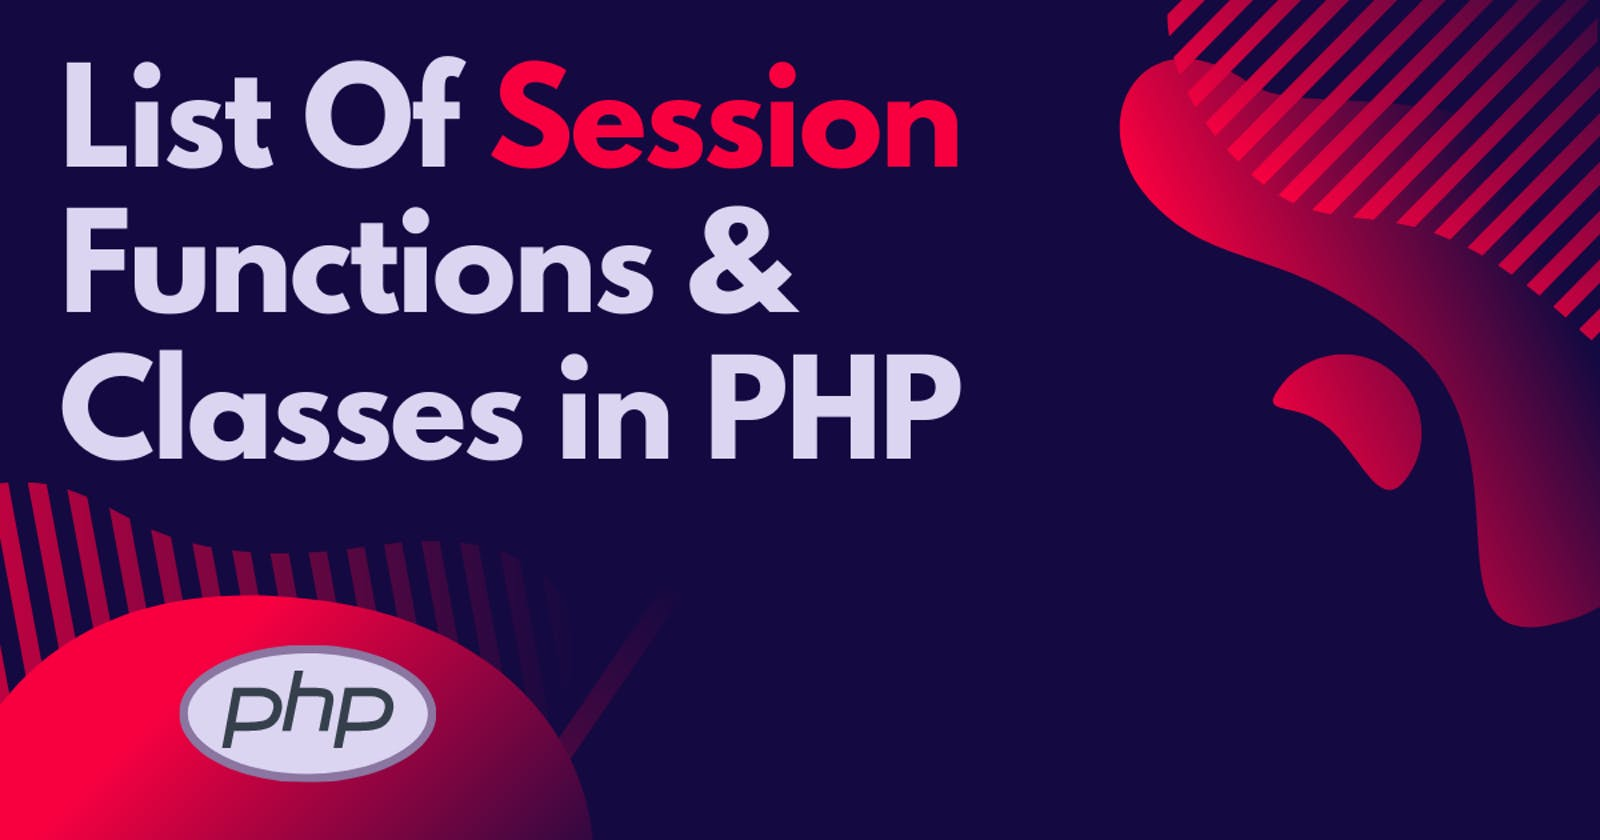 List Of Session Functions & Classes in PHP